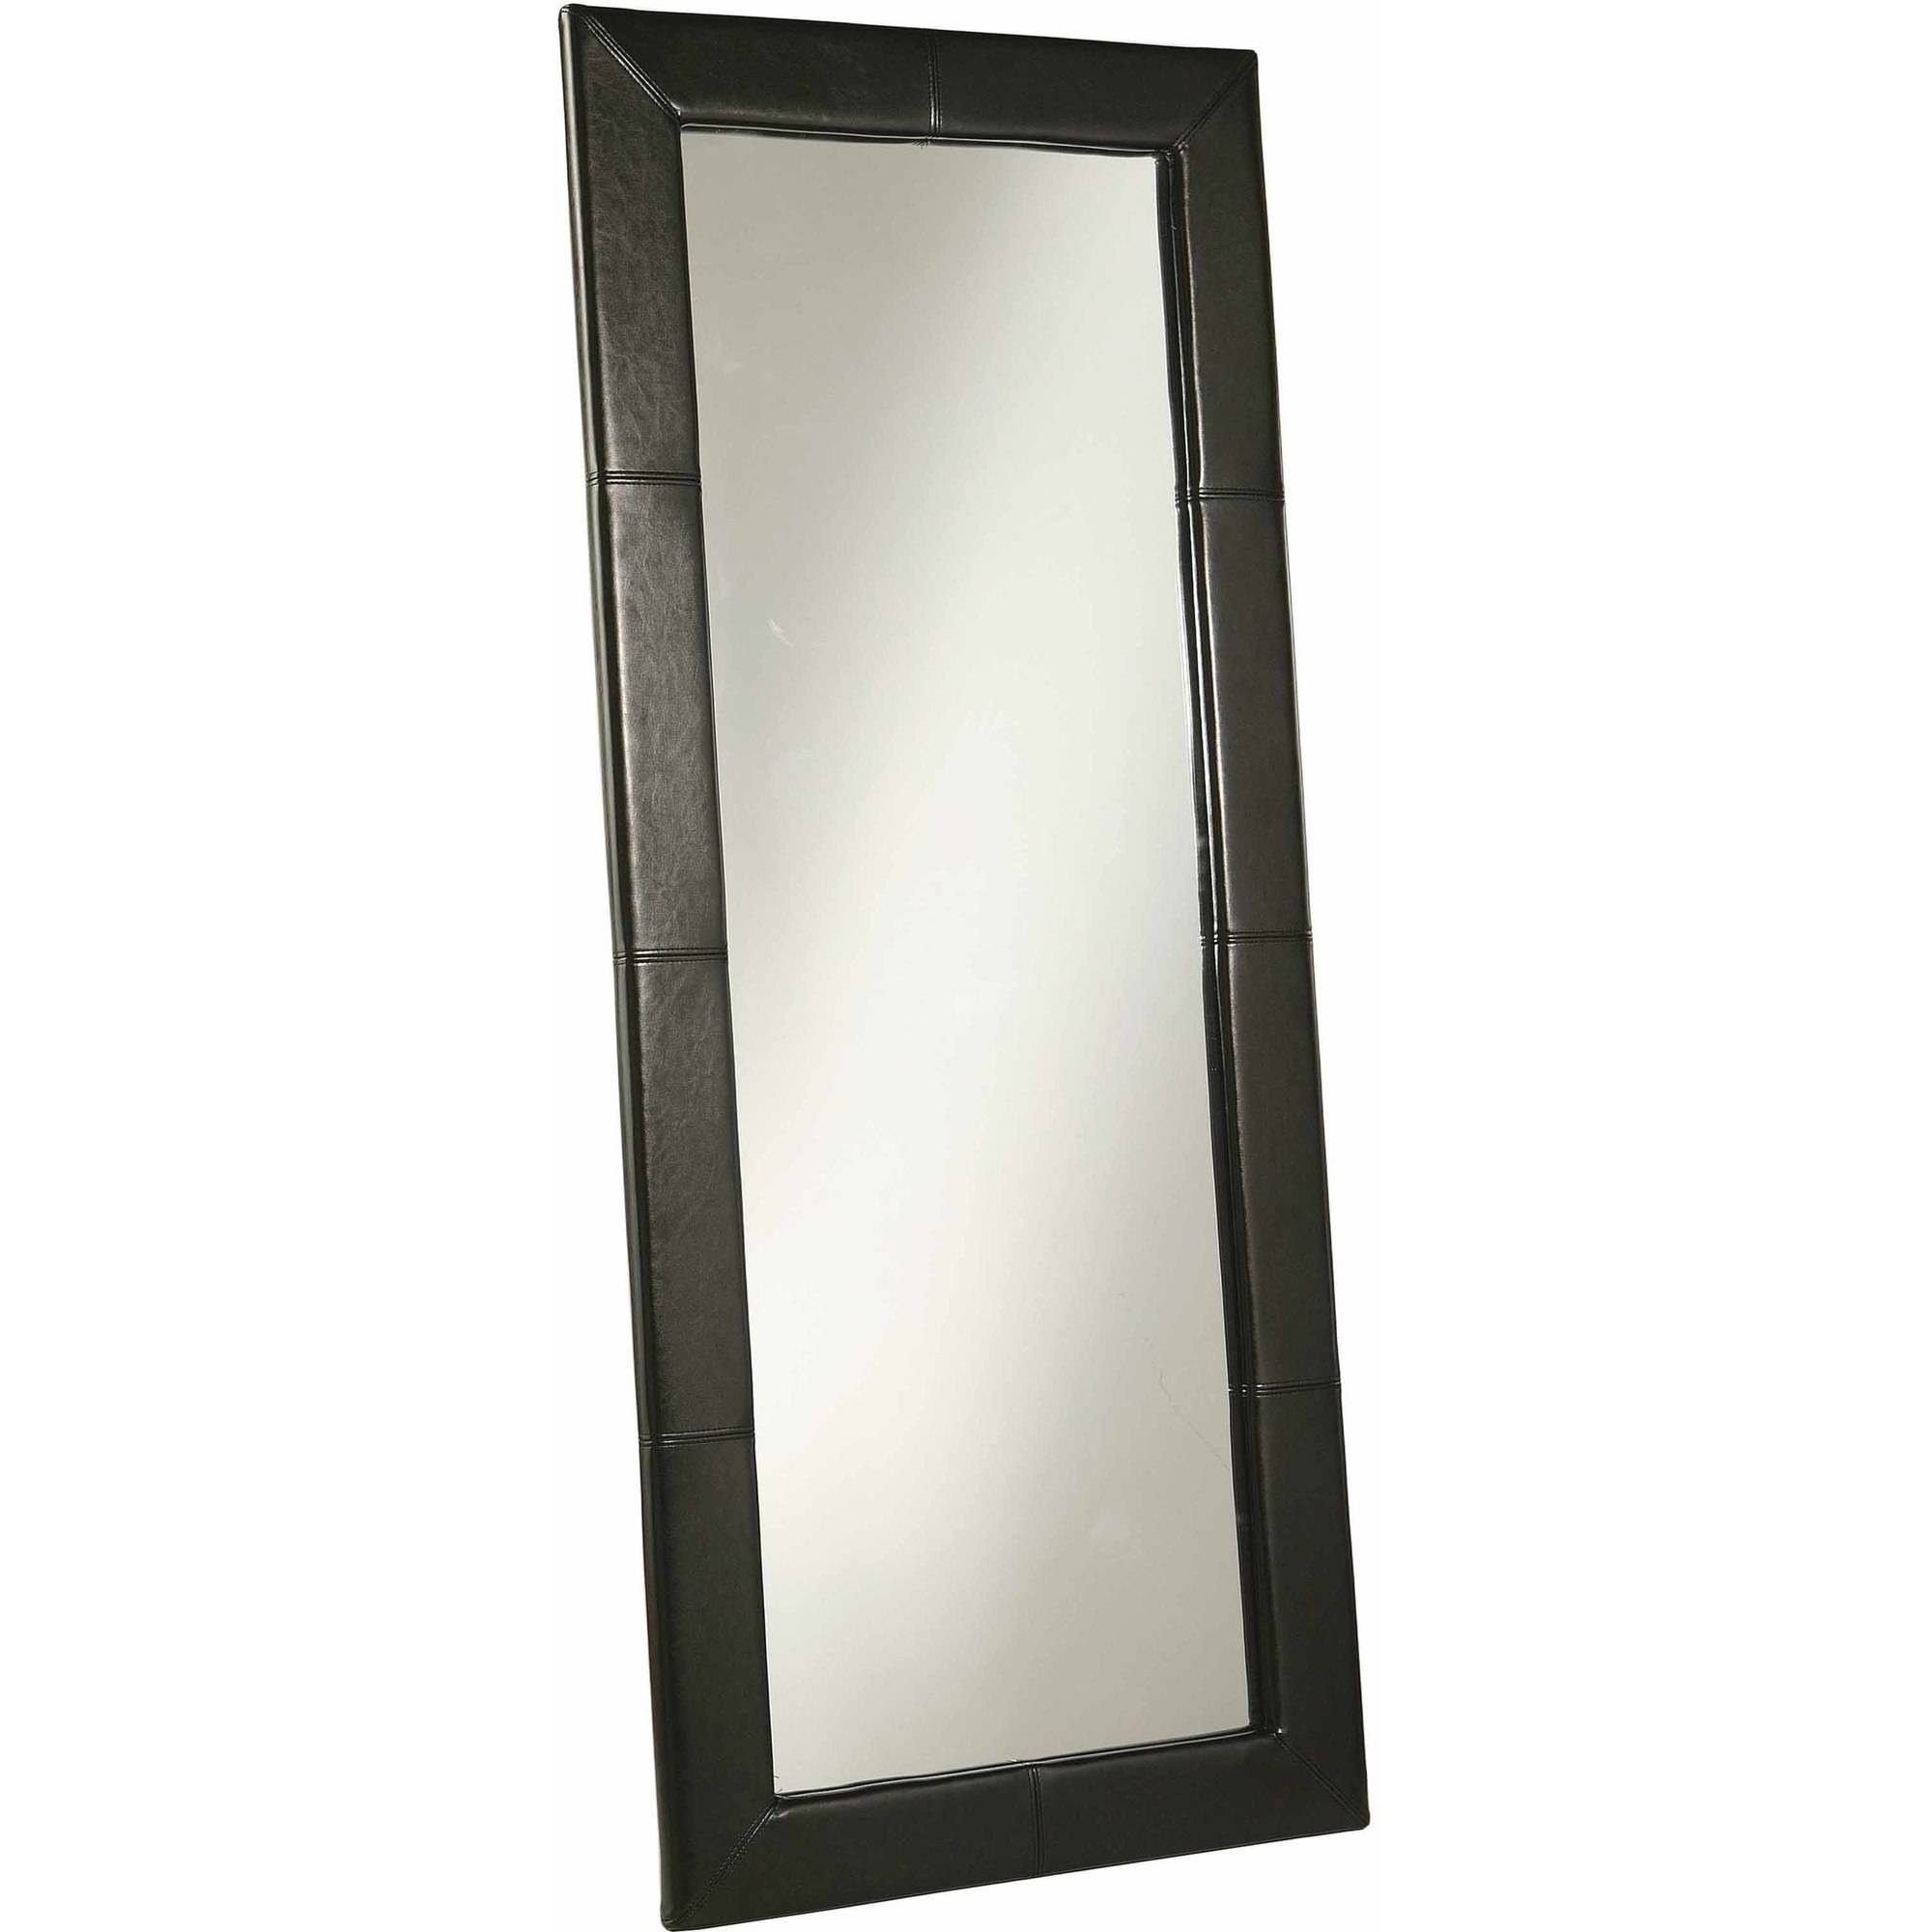 Devon and Claire Torgan Leather Floor Mirror by